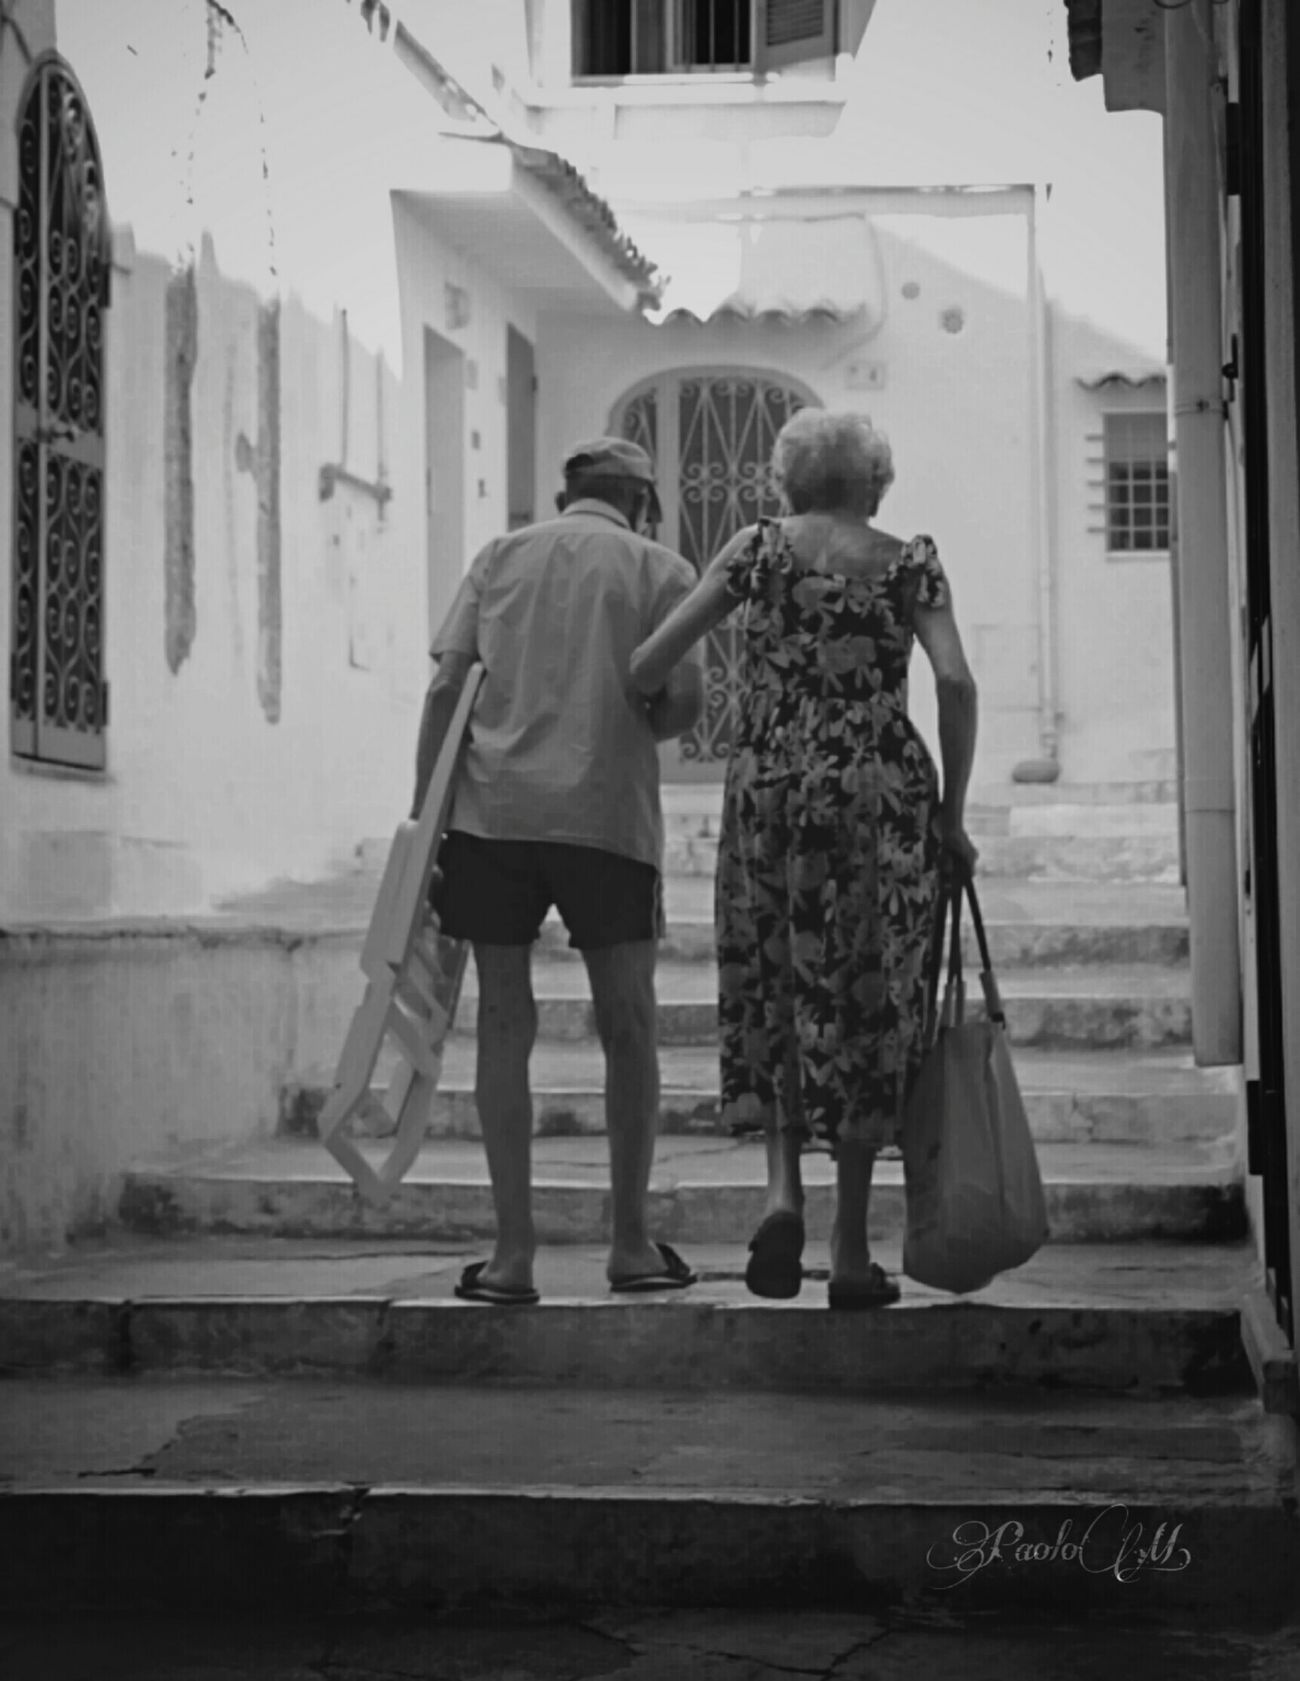 Together forever. Love Lovely Emotions Emotions Captured Streetphotography Bnw Photography Black & White Summer People Bnw Outdoors Travel House Naturaleza Photography Door